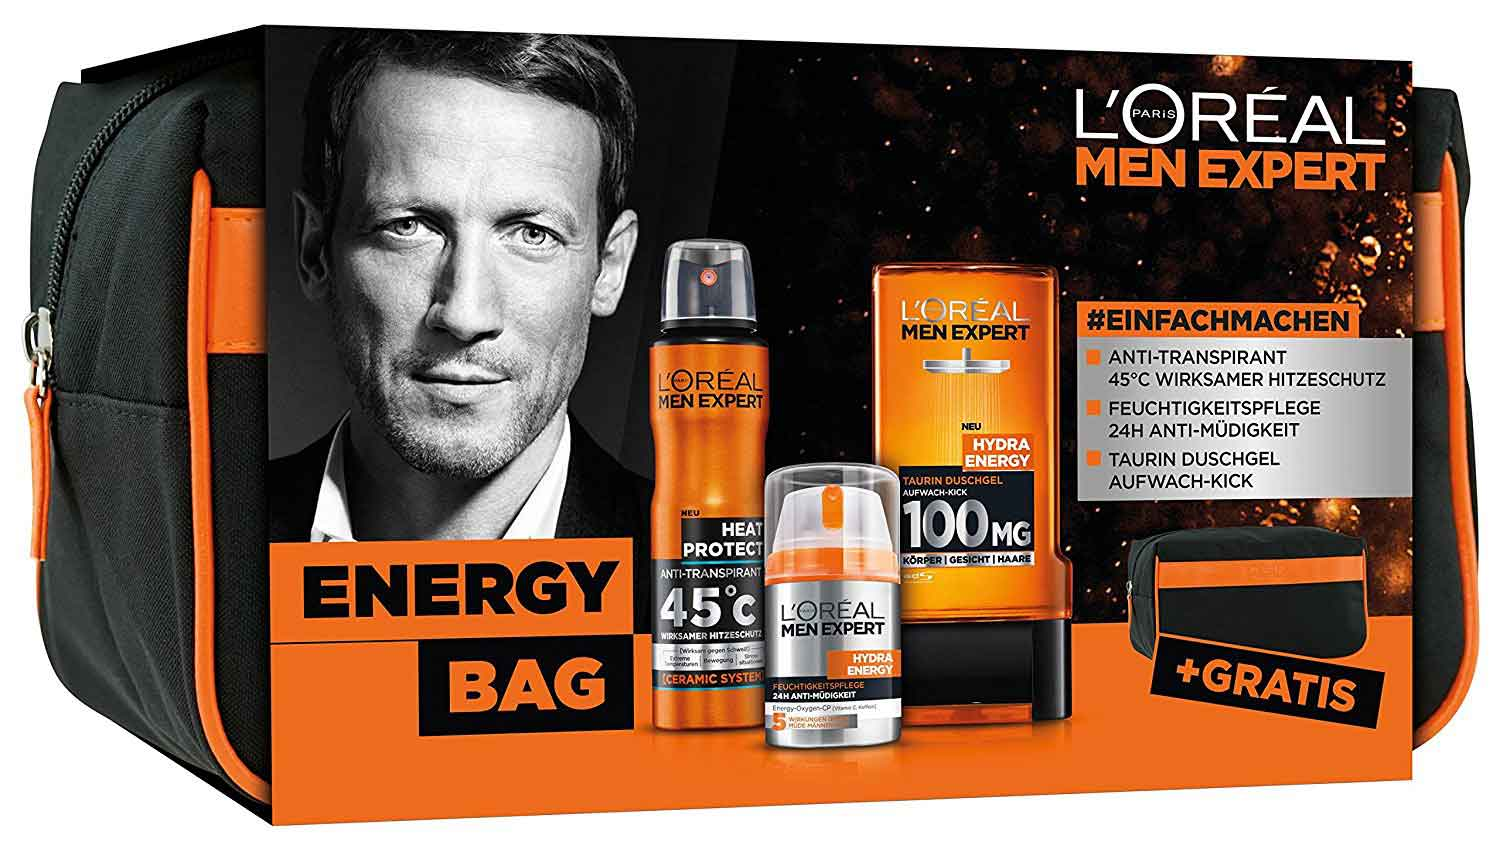 L'Oréal Men Expert Energy Bag Pflegeset